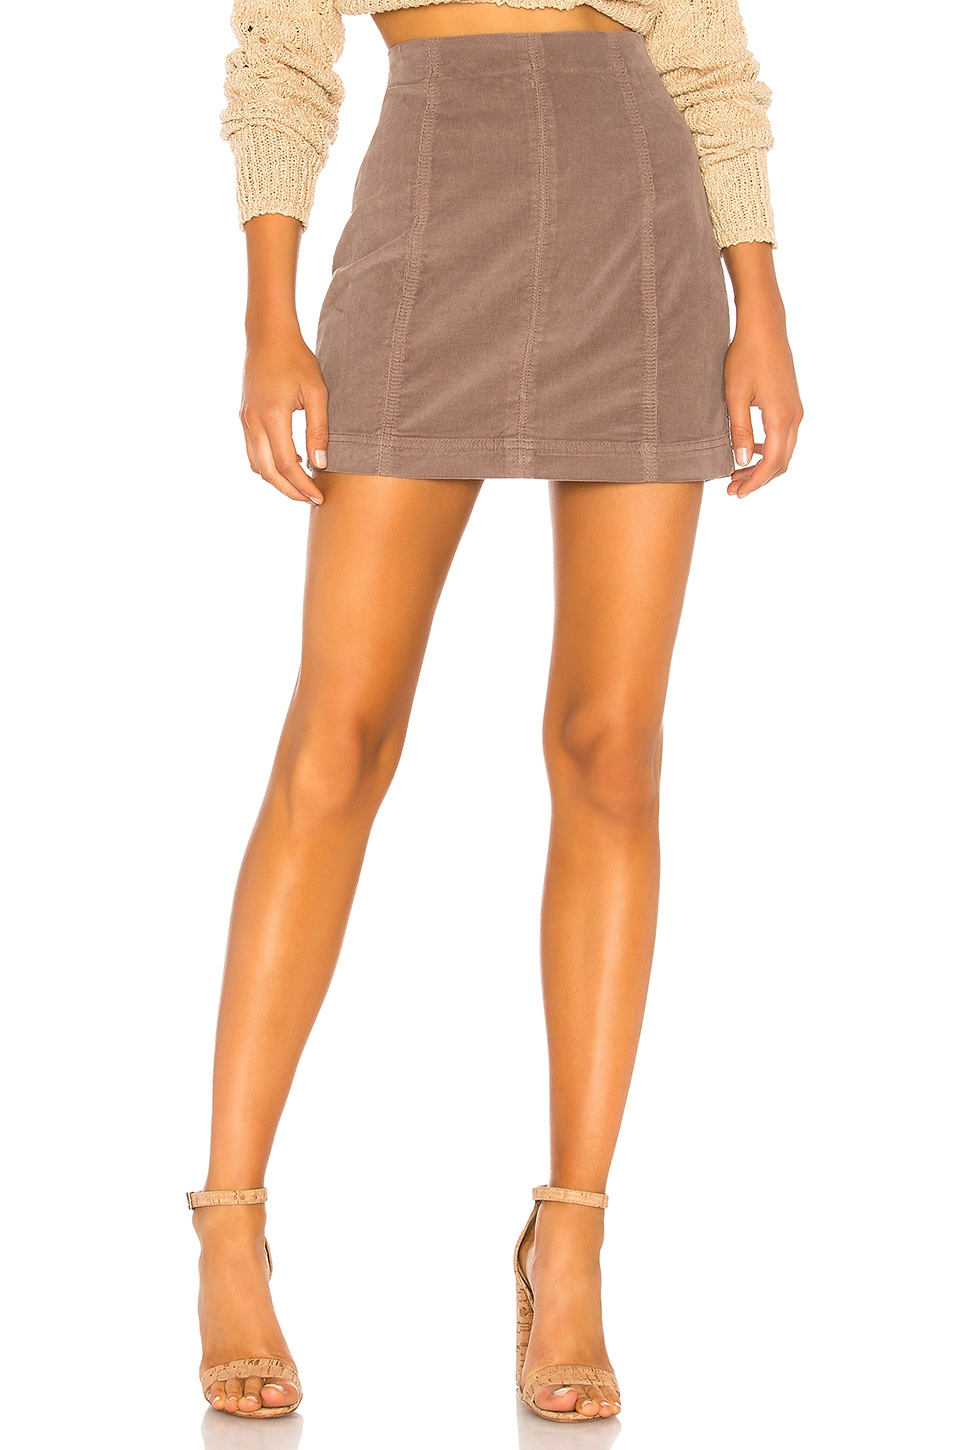 Free People Modern Femme Cord Mini Skirt in Neutral